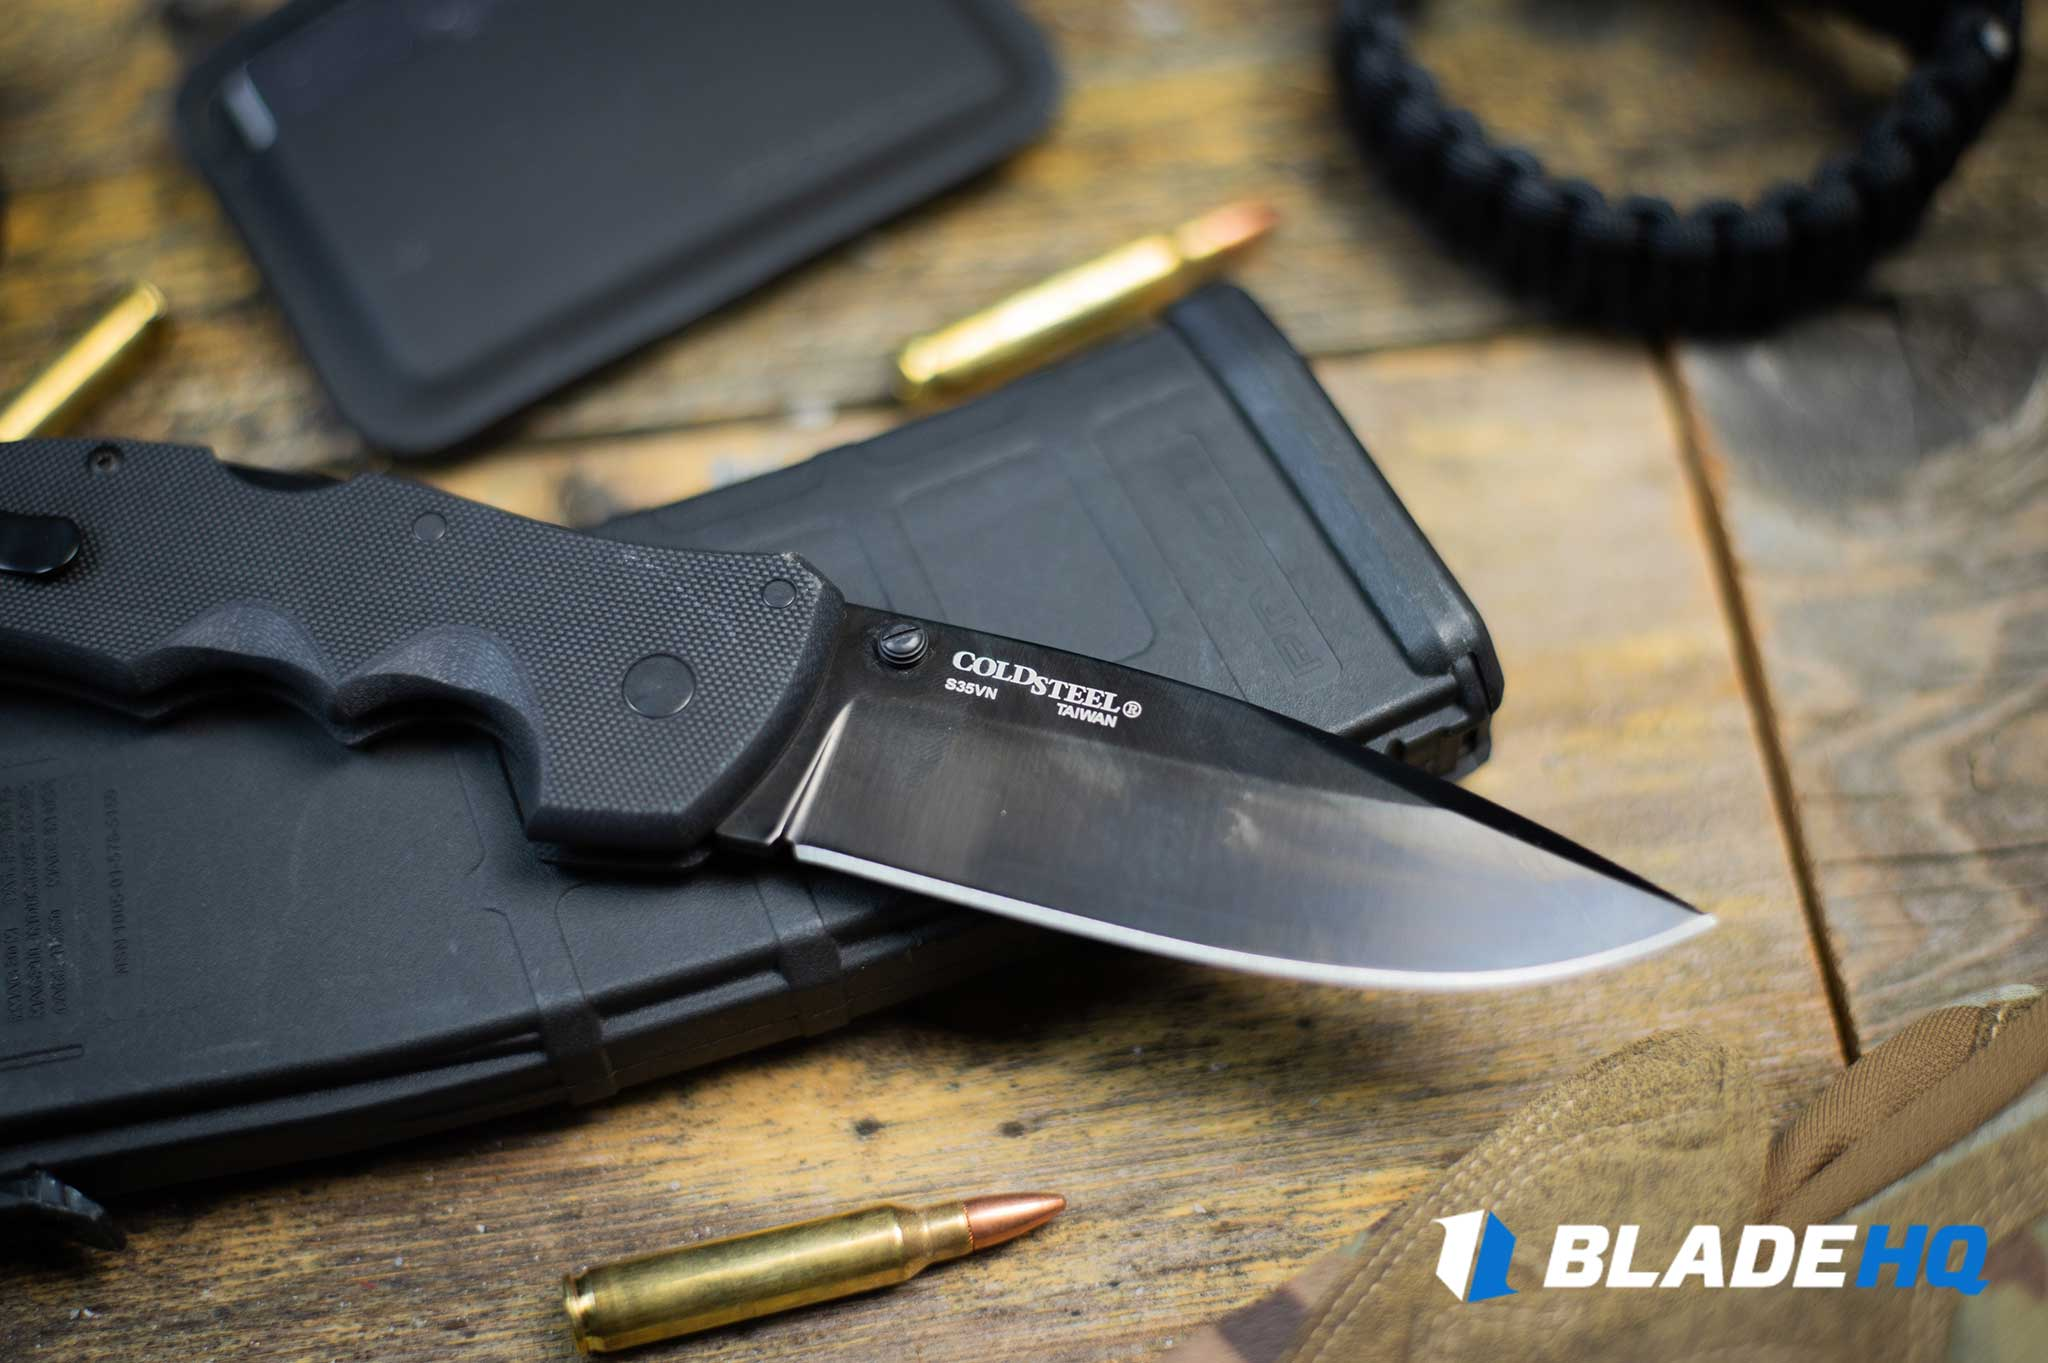 Cold Steel Recon 1 Knife Blade/Sharpening